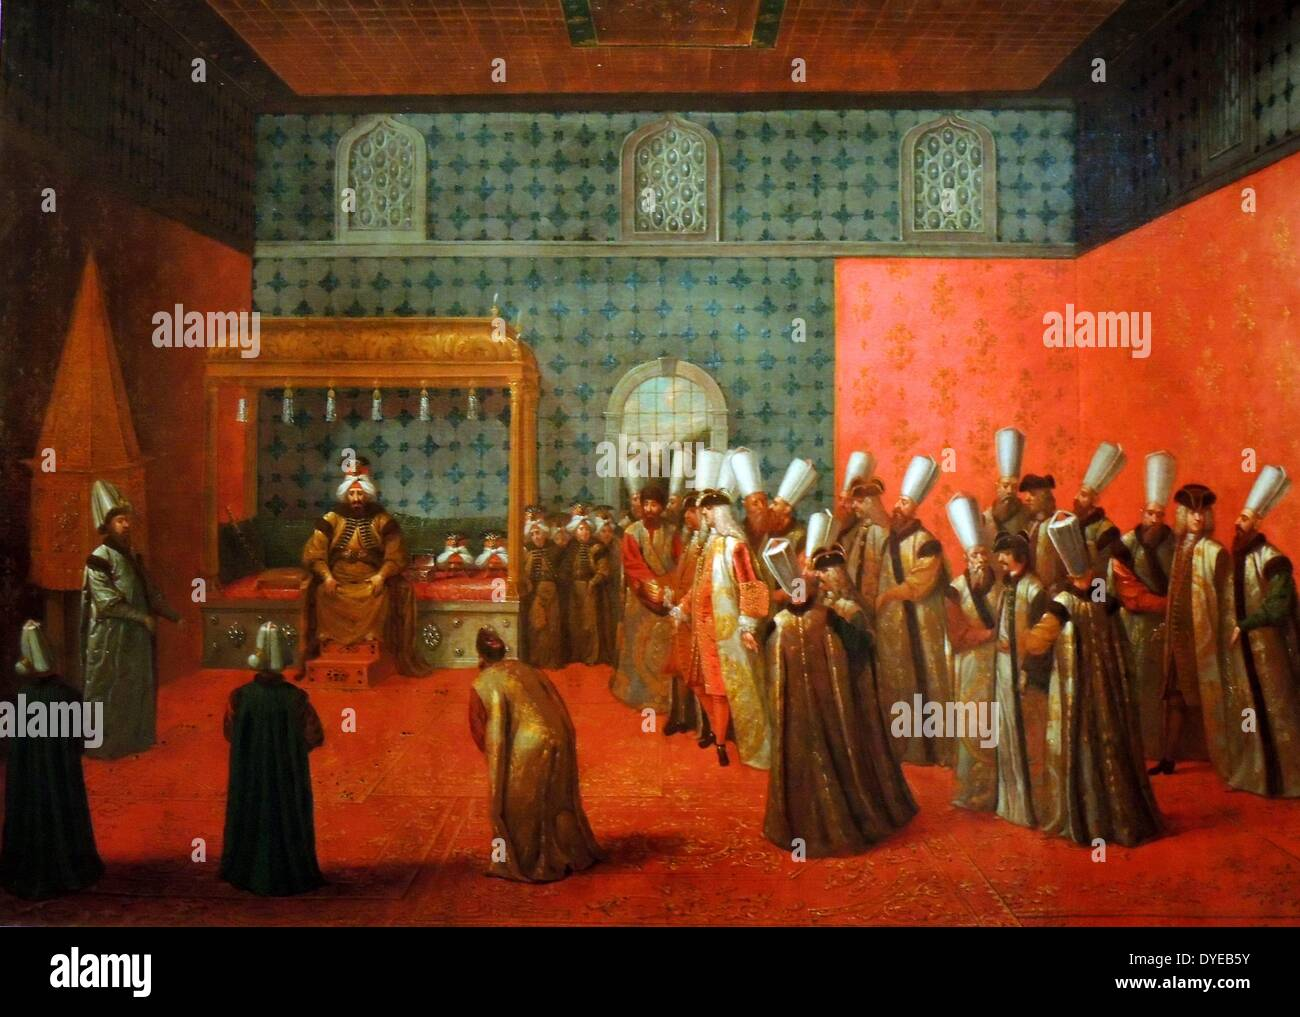 Ambassador Cornelius Calkoen at Audience with Sultan Ahmed III by Jean Baptiste Vanmour (1671-1737) oil on canvas c 1727-1730 - Stock Image